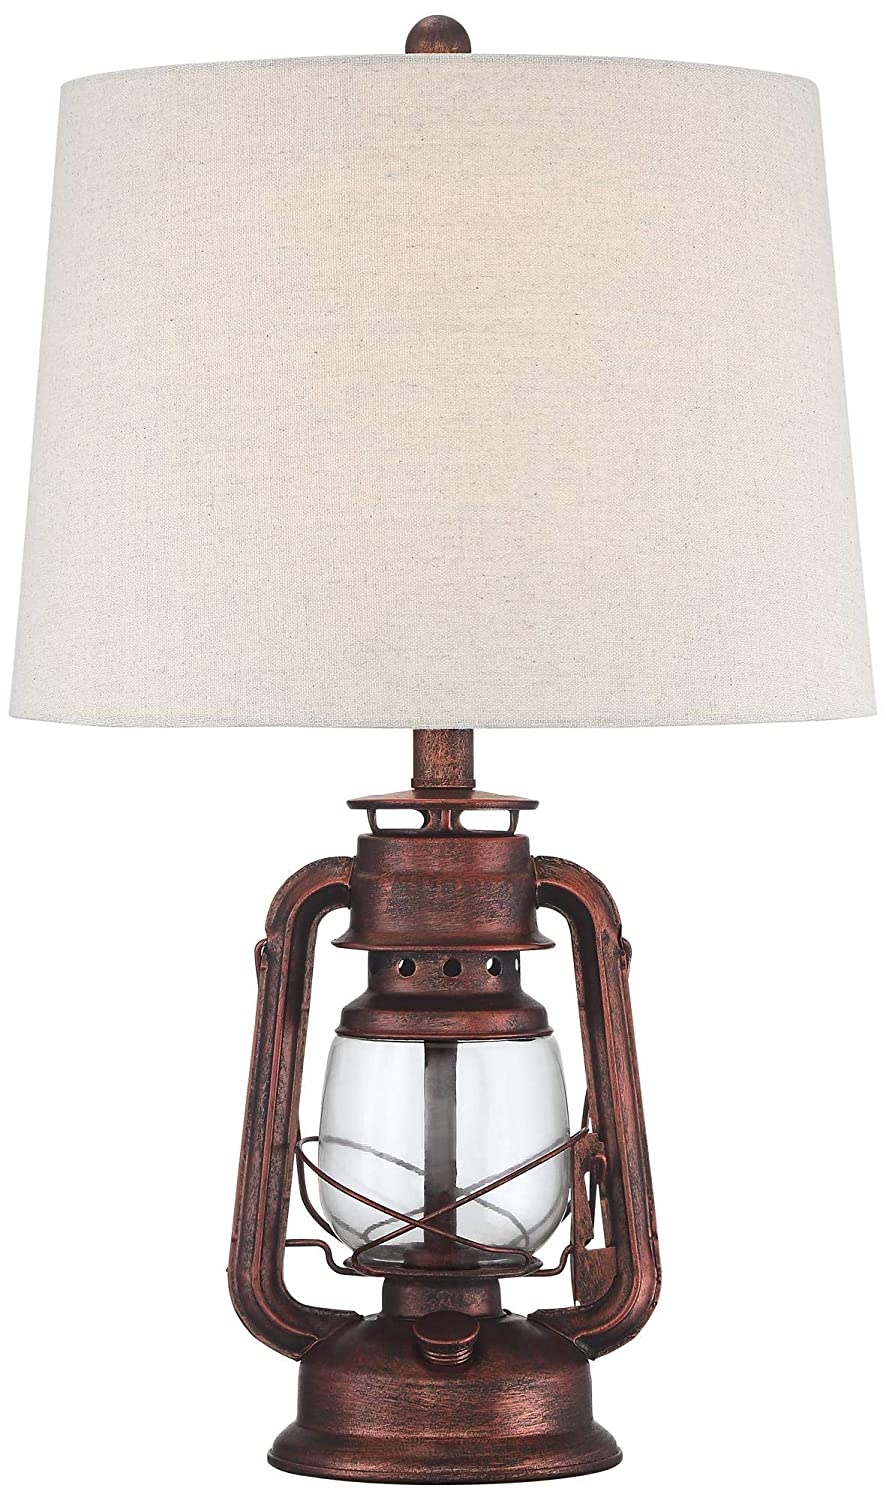 Amazon.com: Murphy Rustic Industrial Accent Table Lamp Miner ...